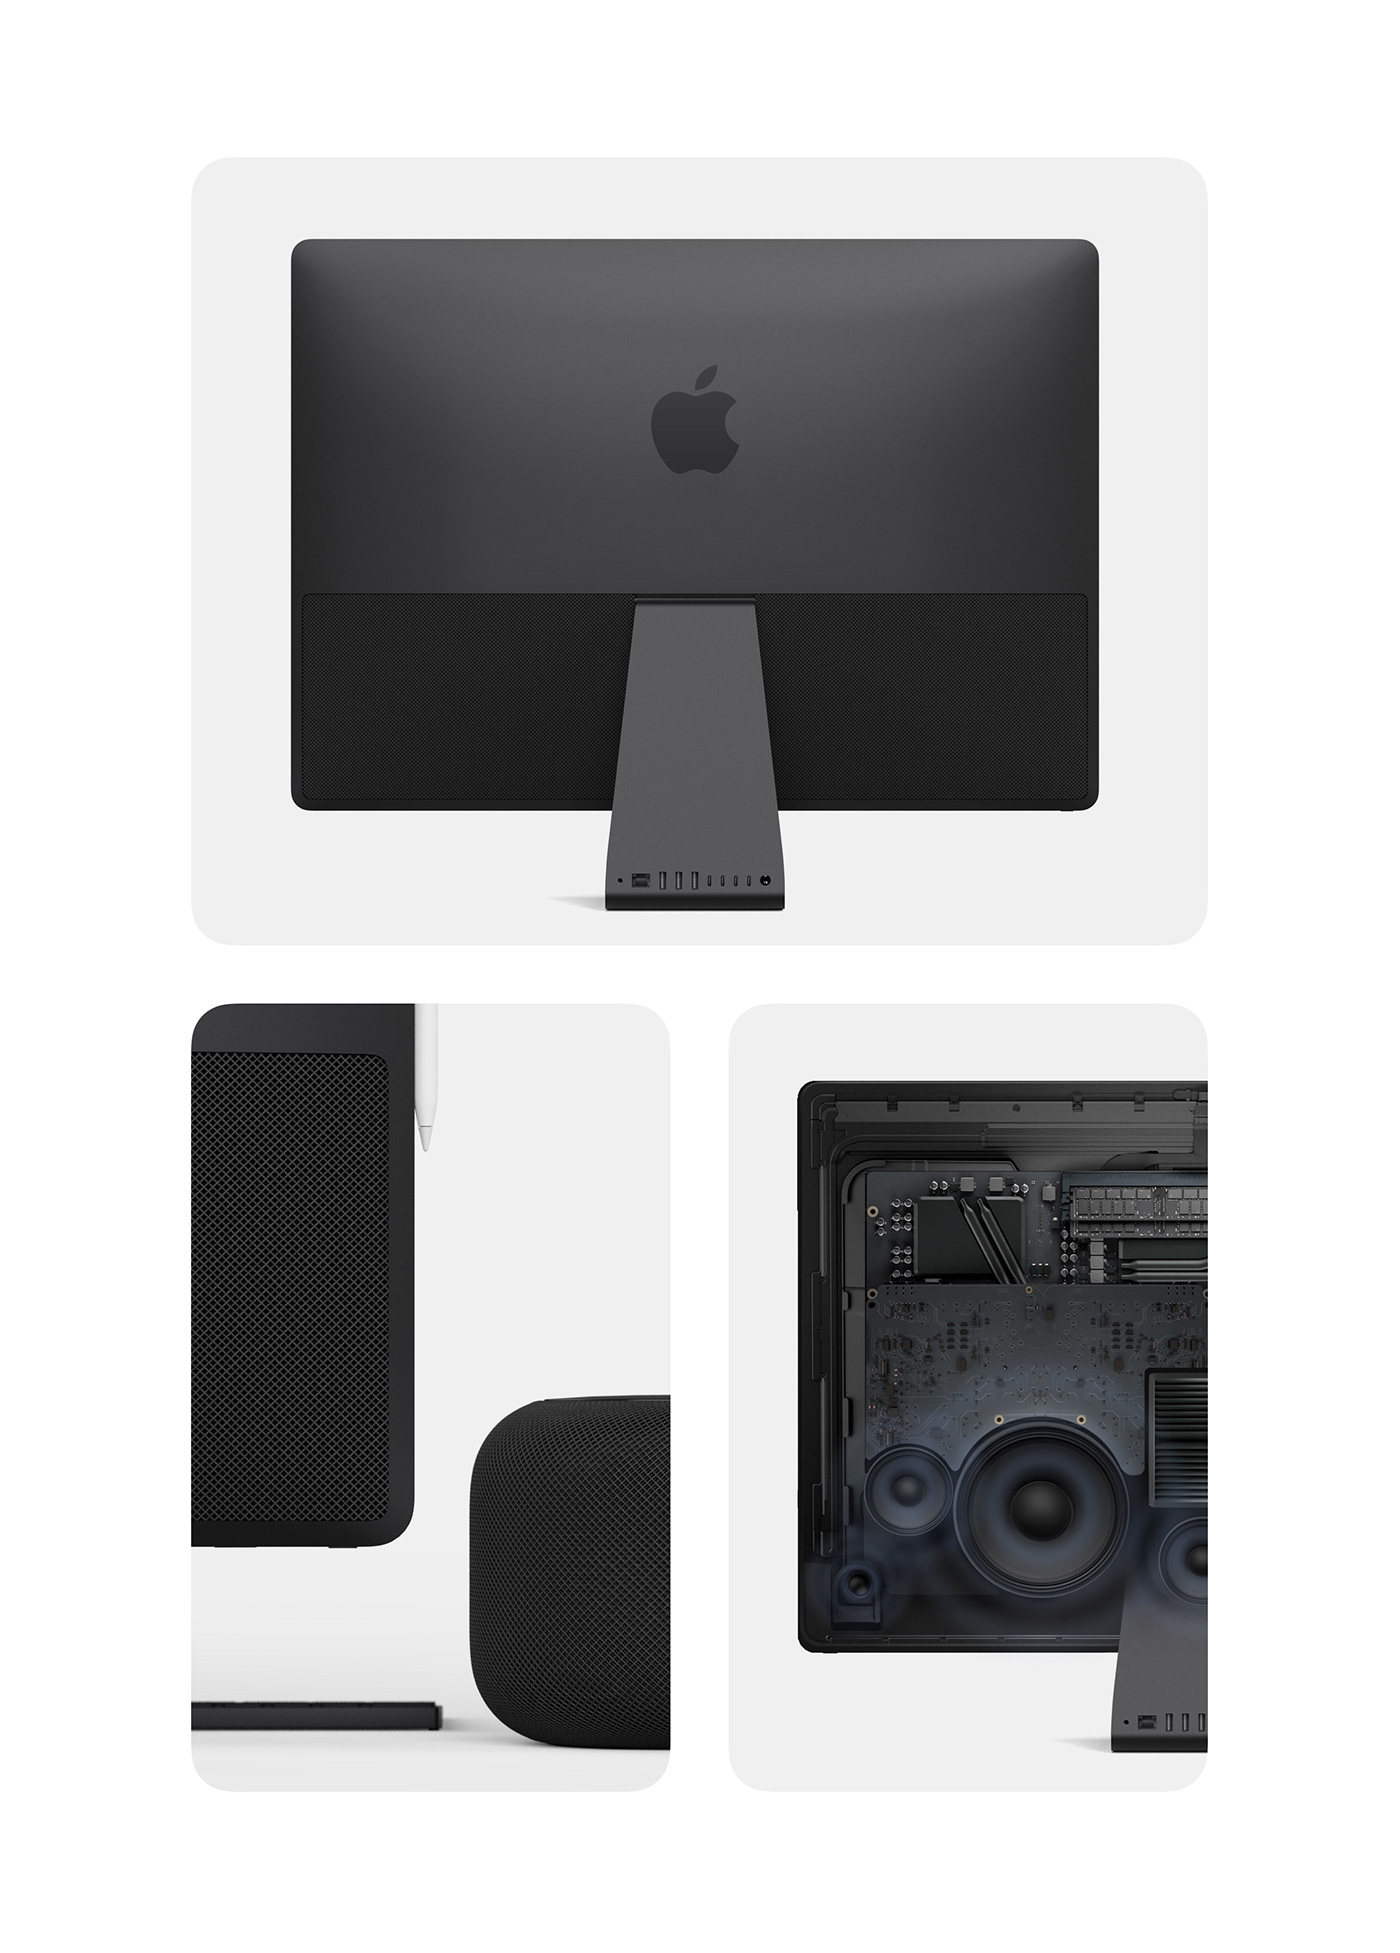 iMac apple Computer industrial design  hardware iphone airpods Airpower design tech